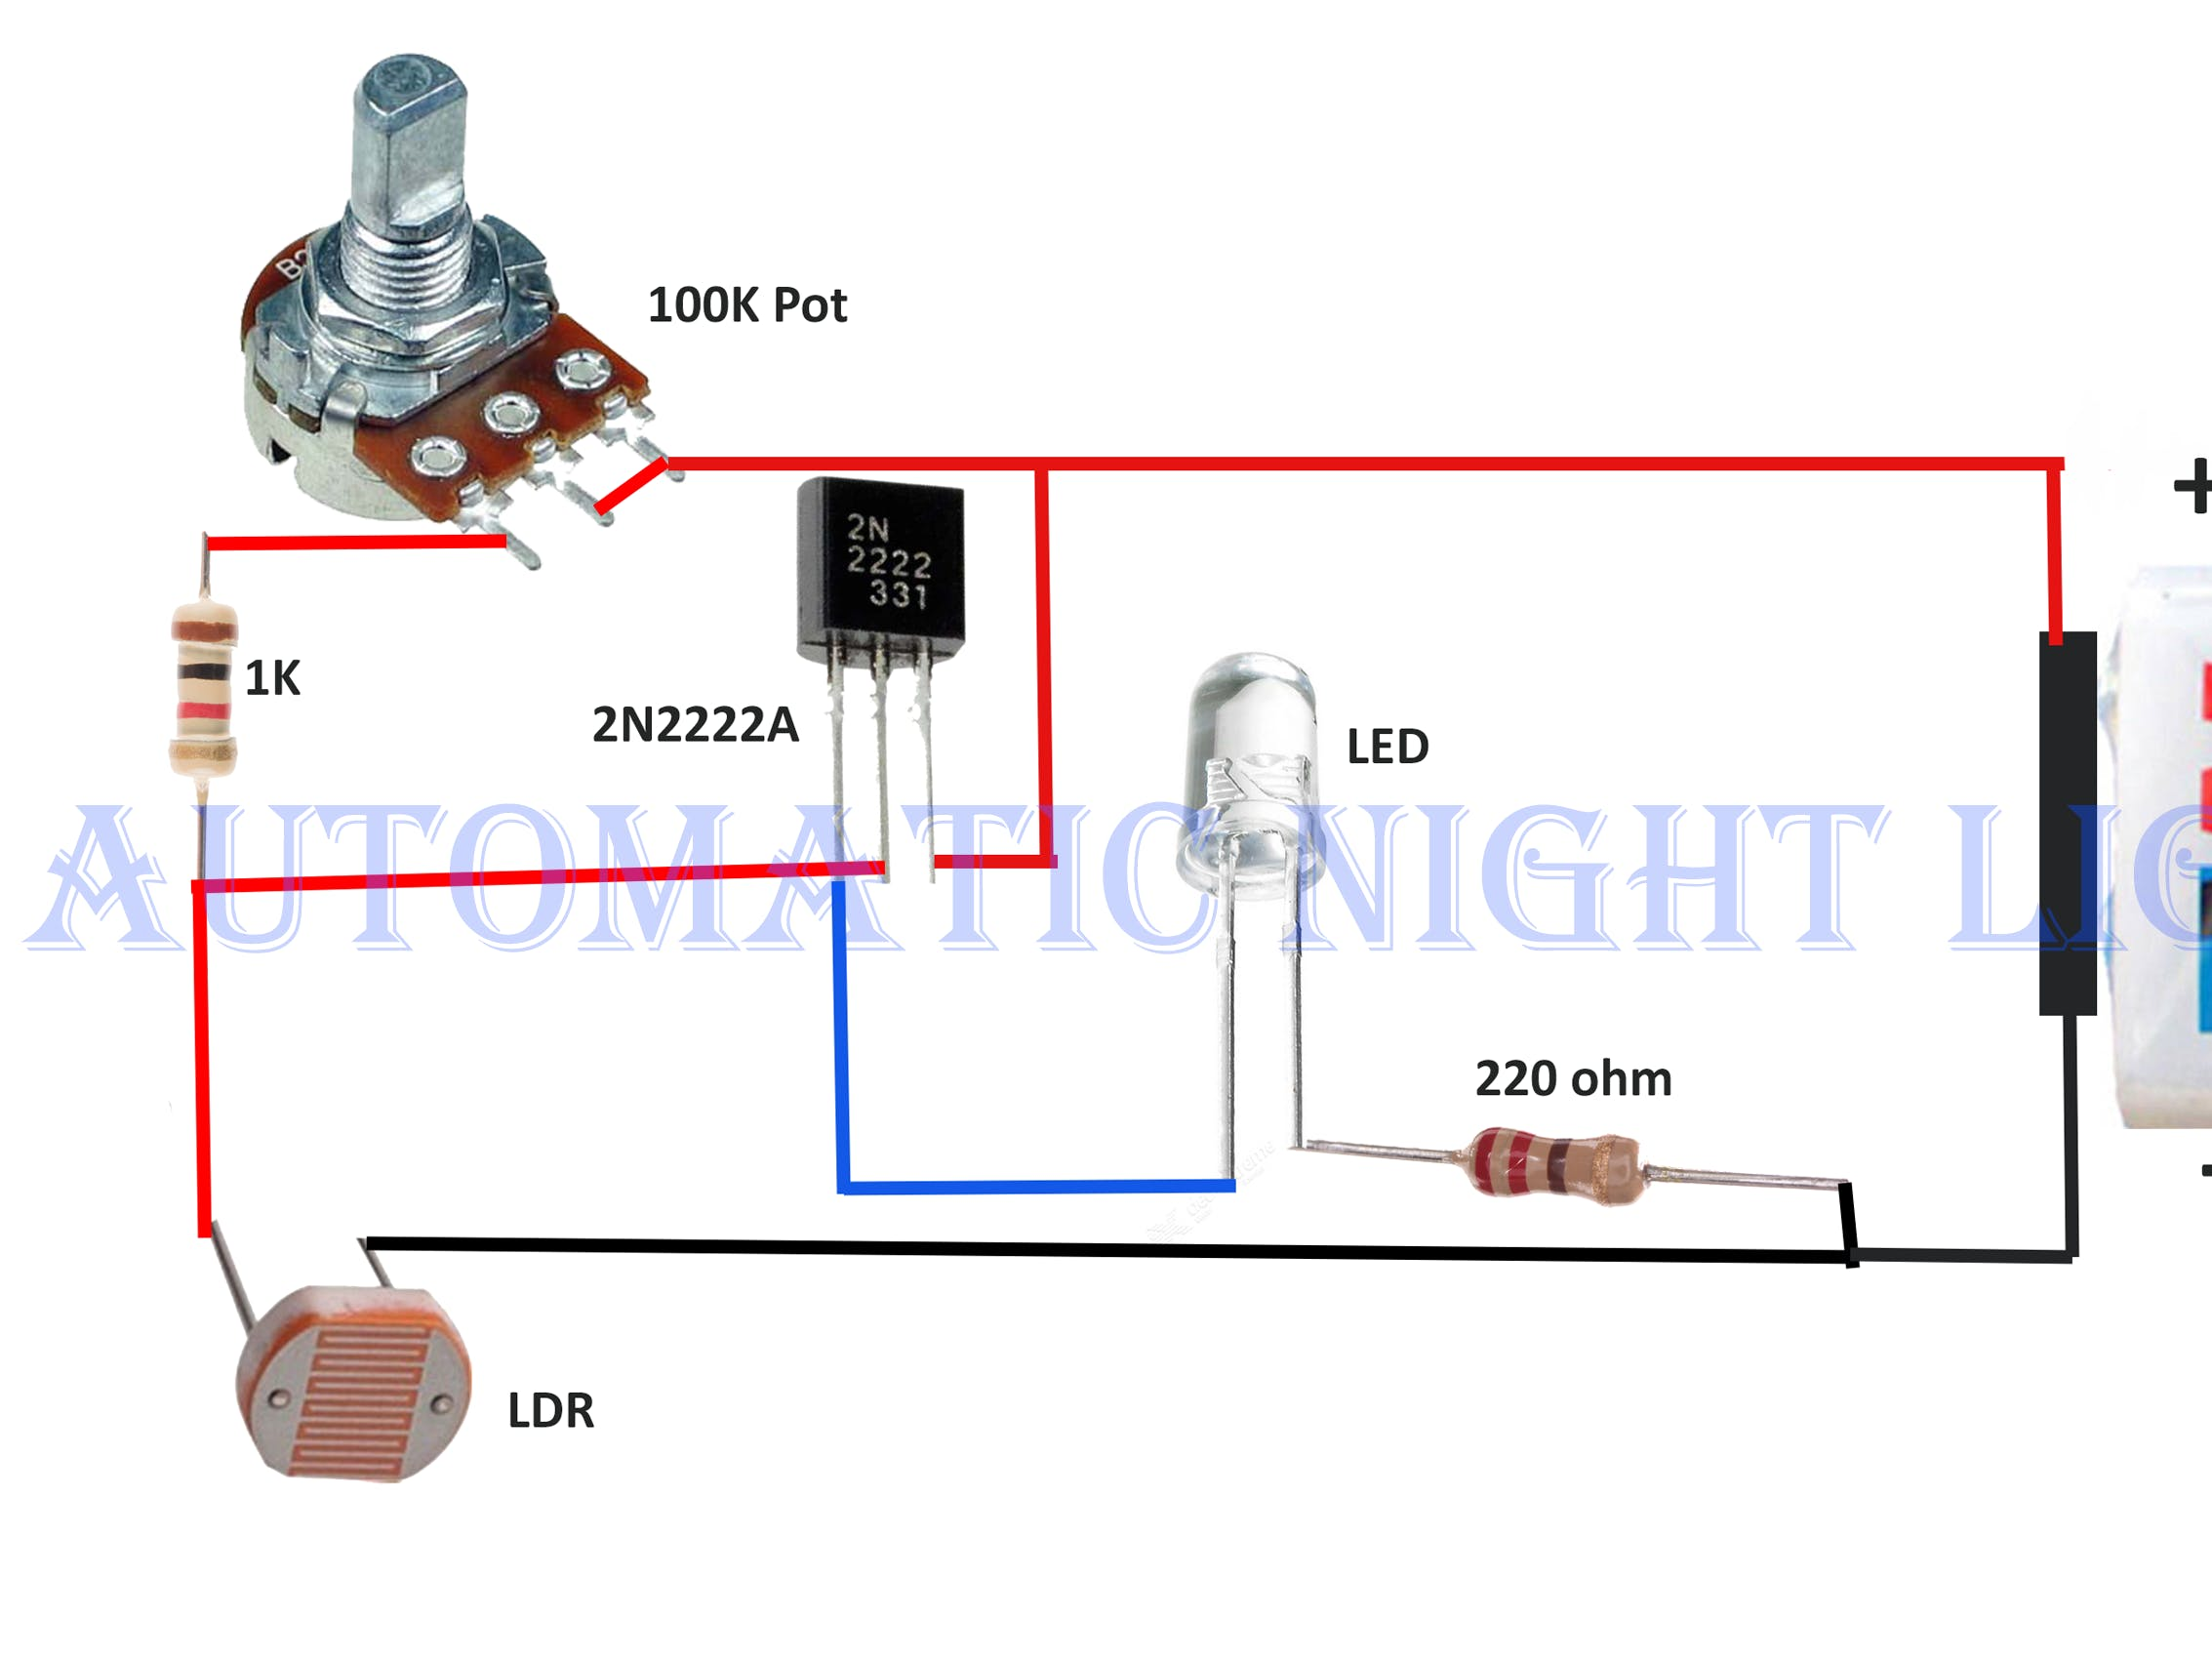 Automatic Night Lamp with LDR